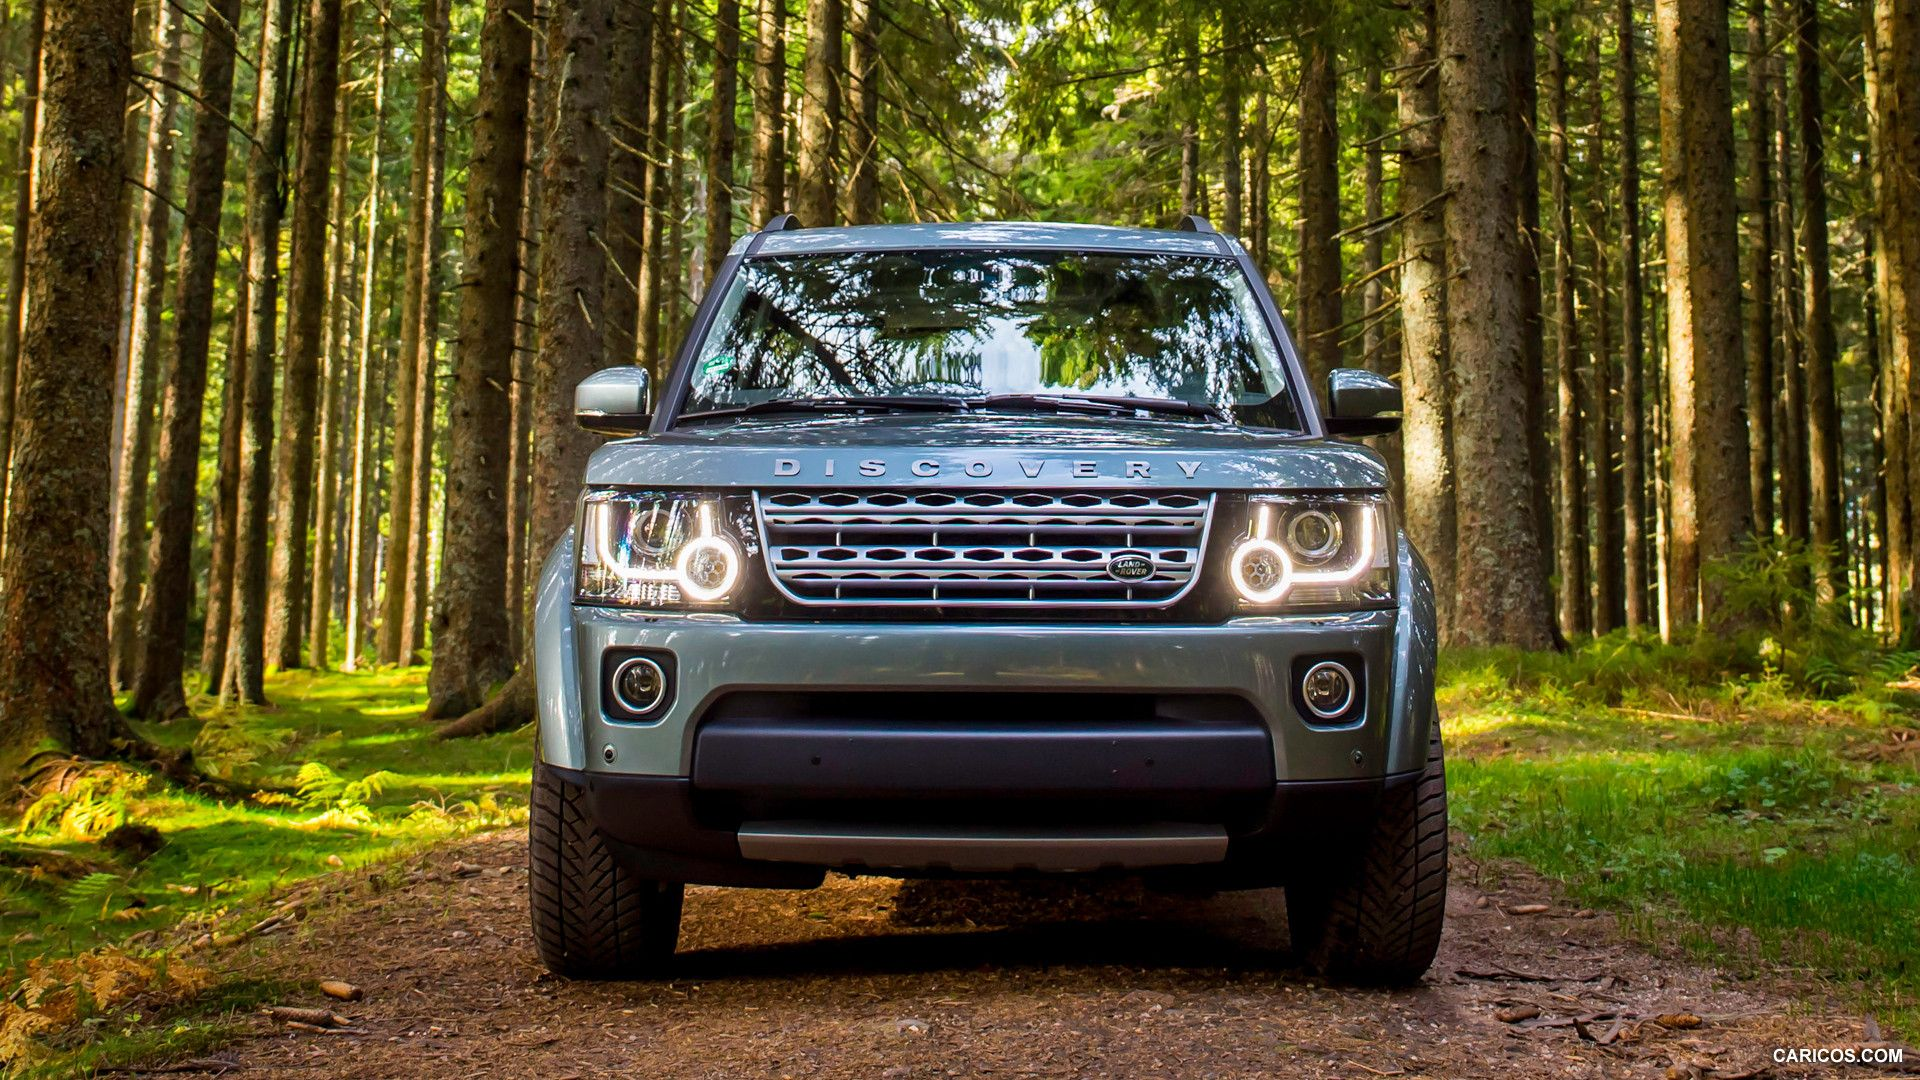 2014 Land Rover Discovery Wallpaper Cars Pinterest